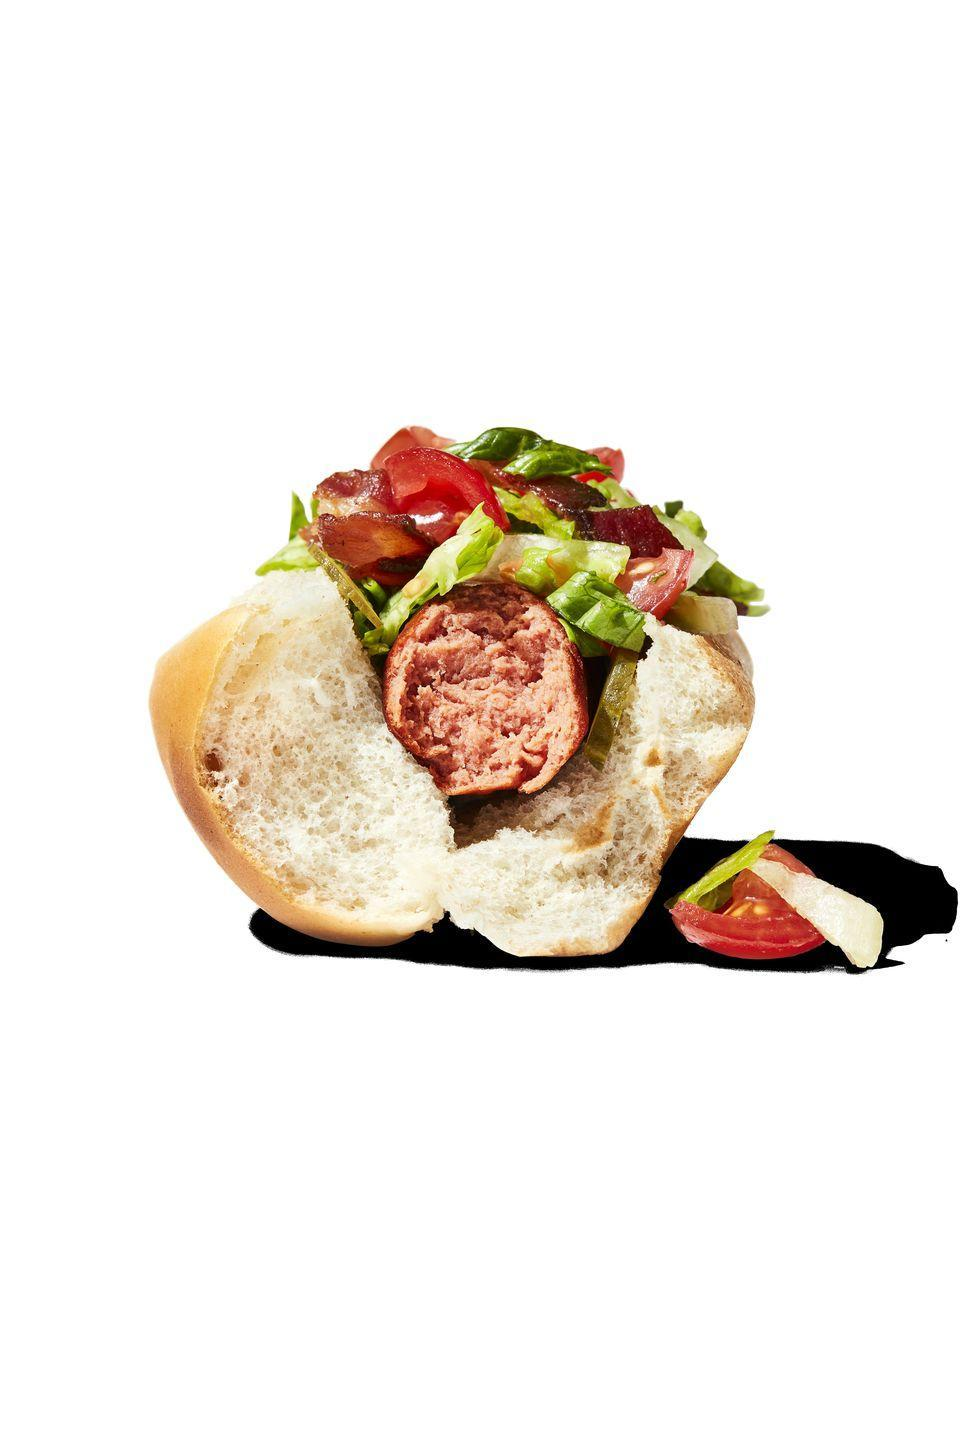 <p>2 chopped cooked bacon strips + ⅓ cup chopped tomato + 1/2 cup + shredded lettuce + 1/4 cup sliced dill pickle</p>